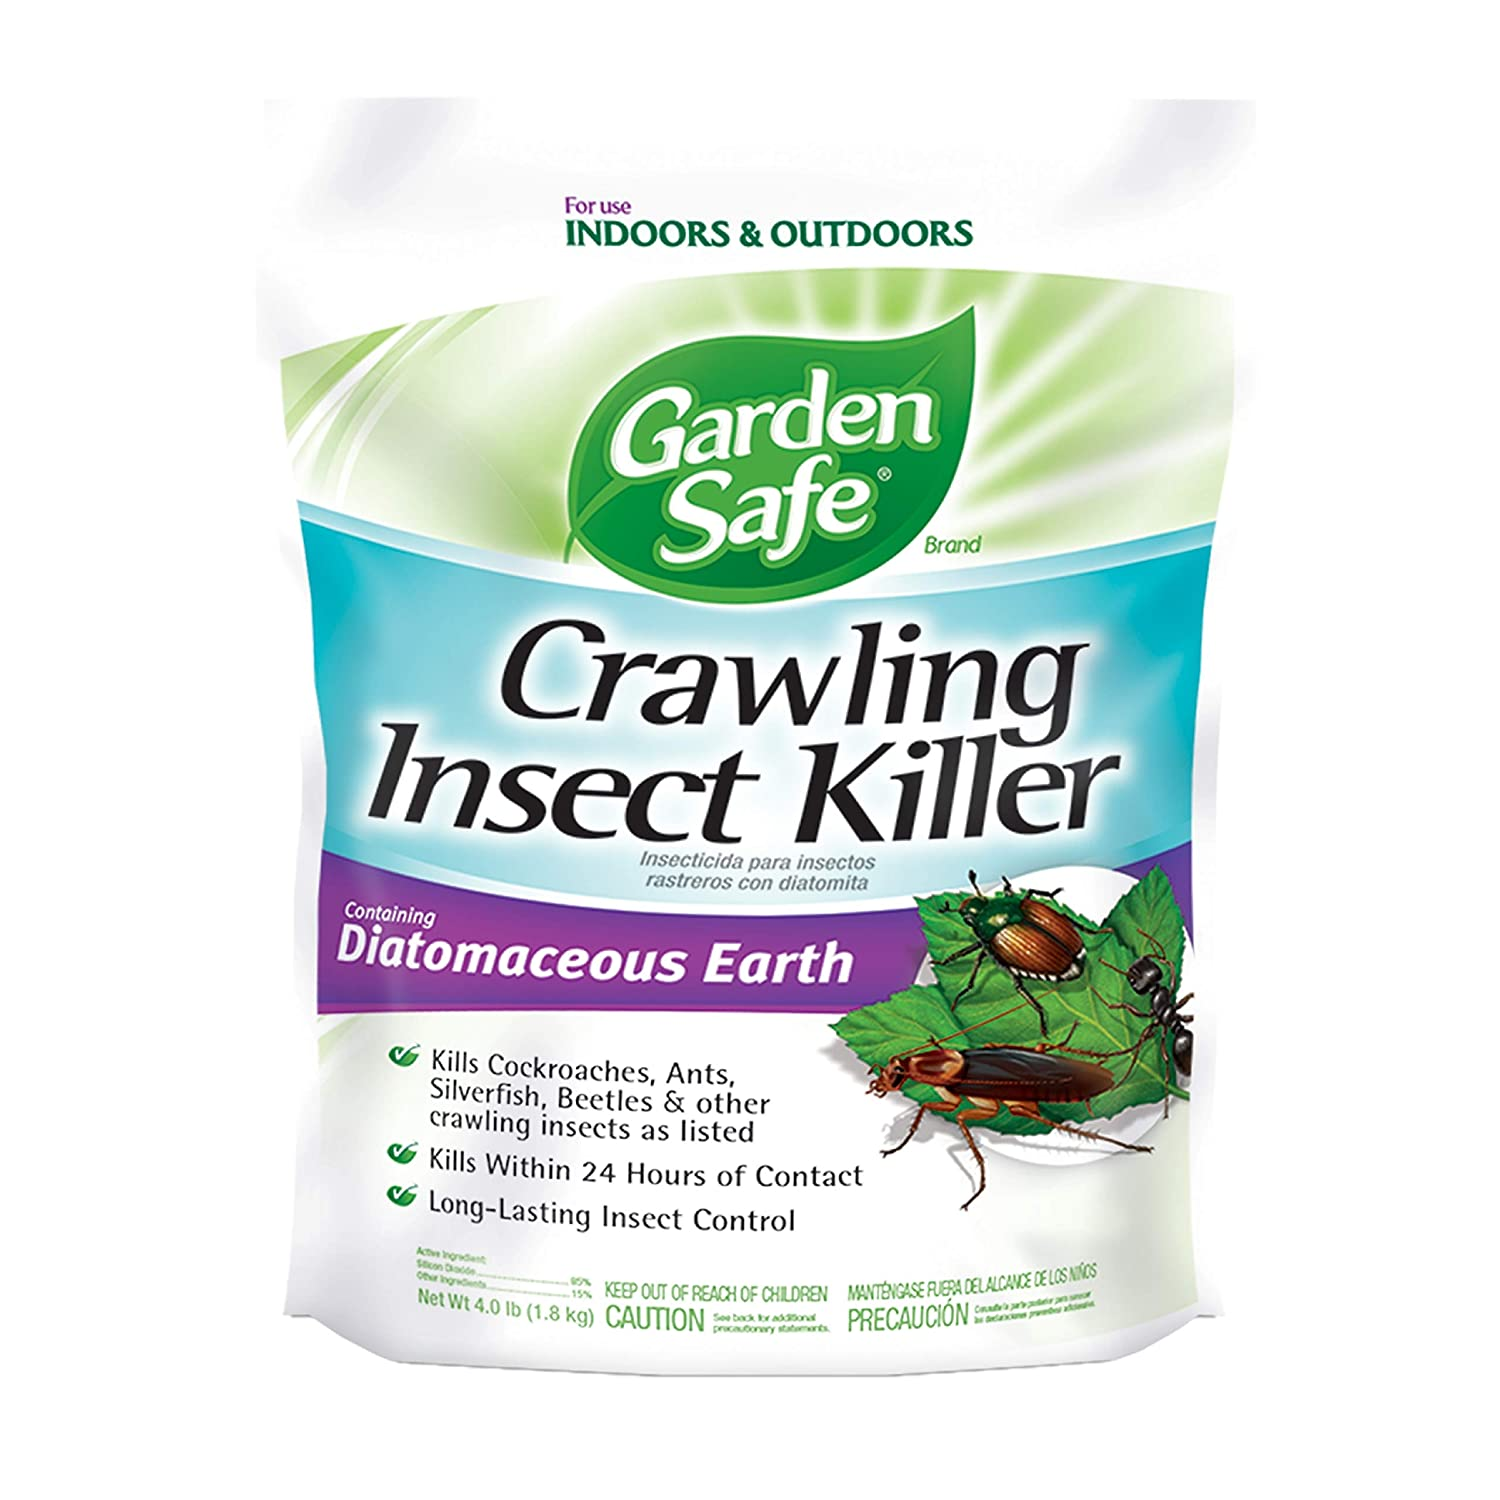 Amazon.com : Garden Safe Brand Crawling Insect Killer with Diatomaceous  Earth, 4-Pound, 6-Pack : Garden & Outdoor